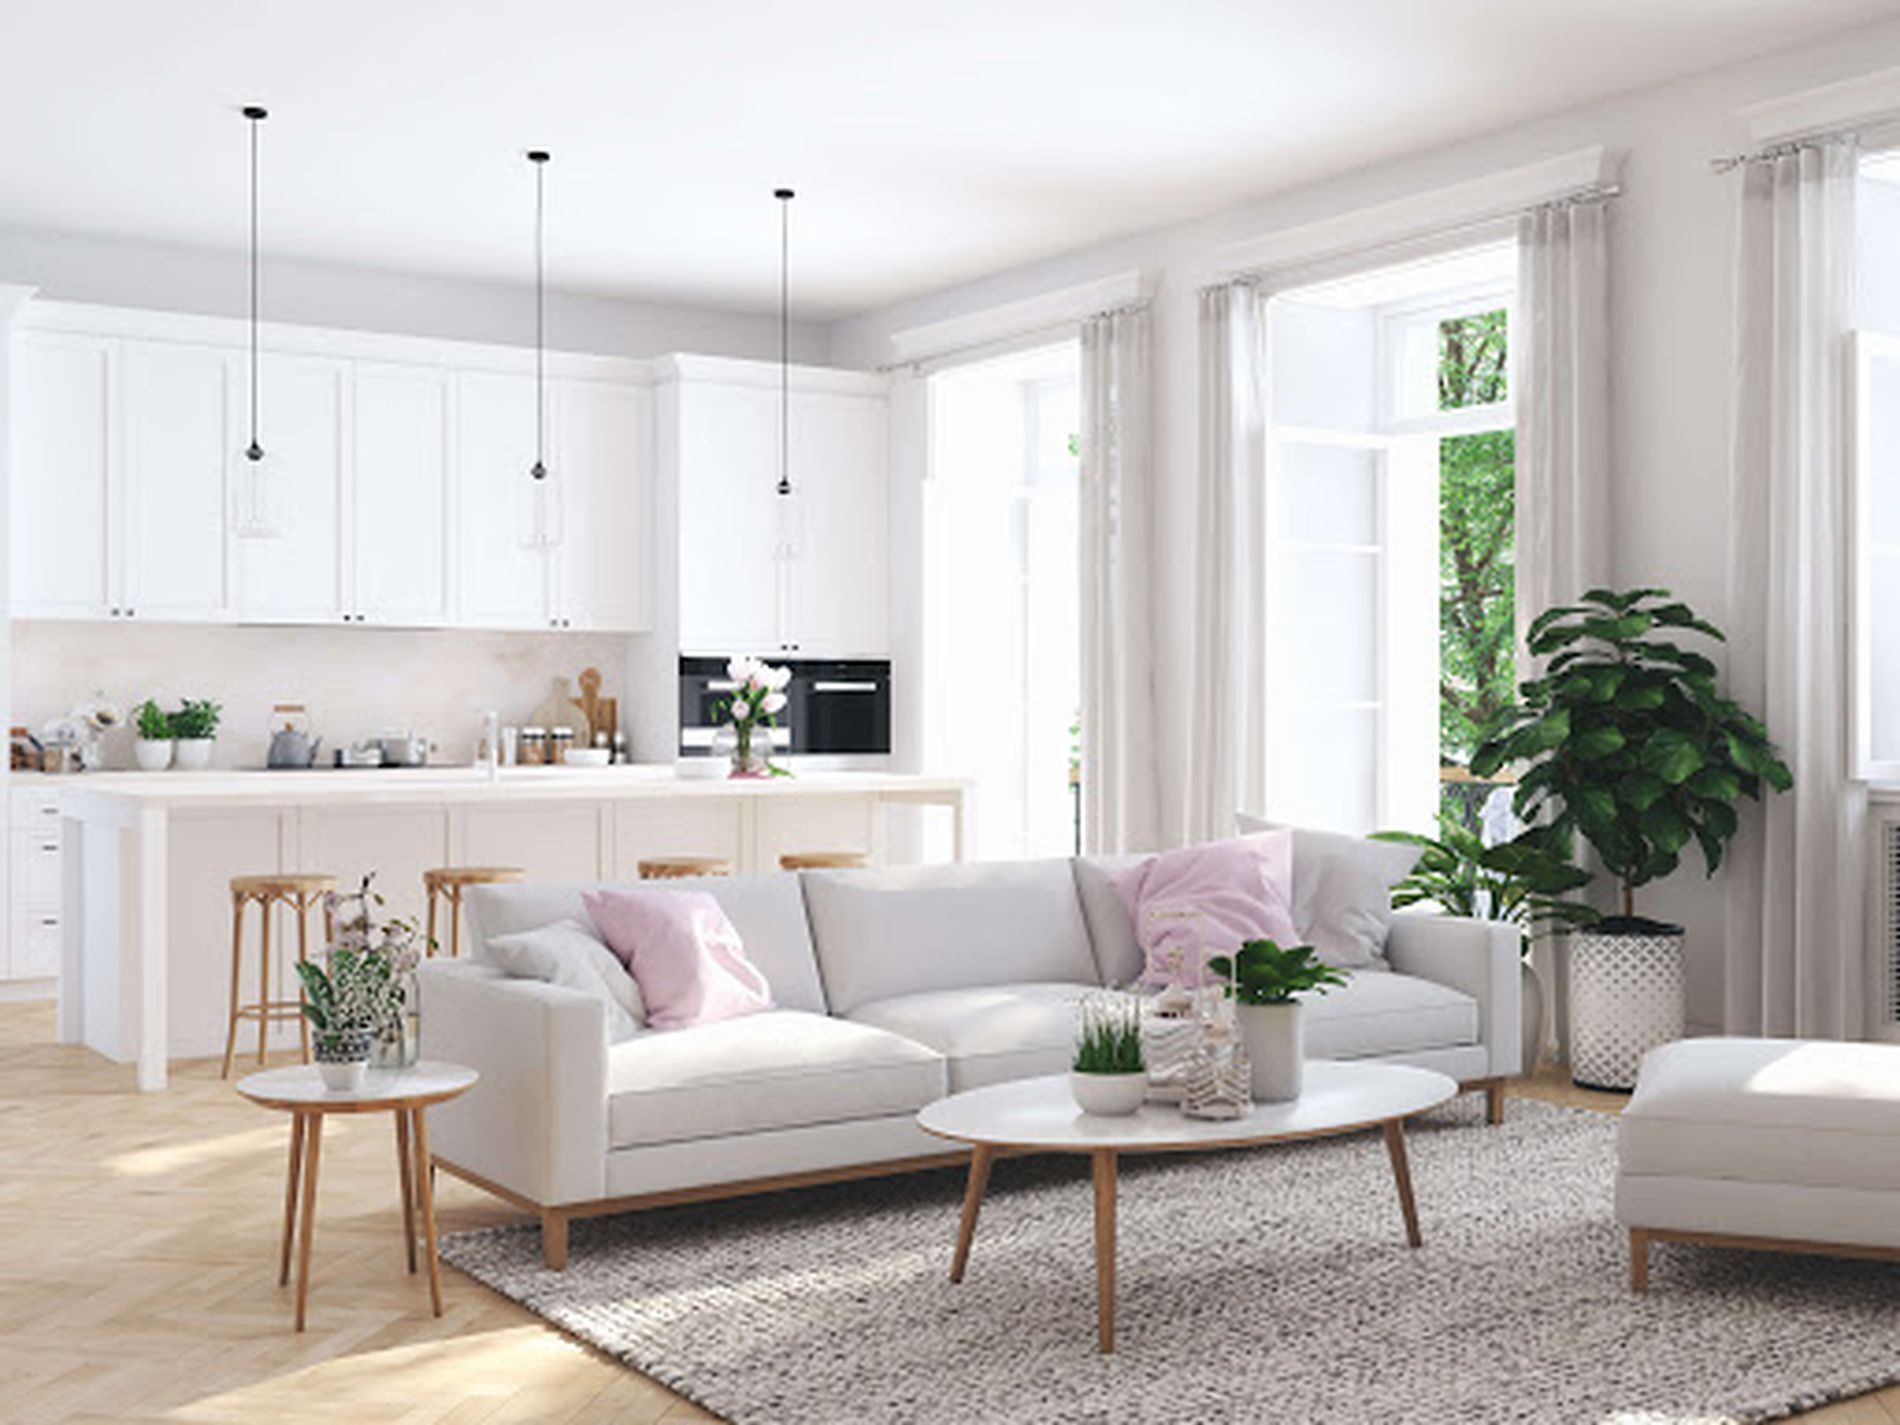 Property Styling And Services Business For Sale